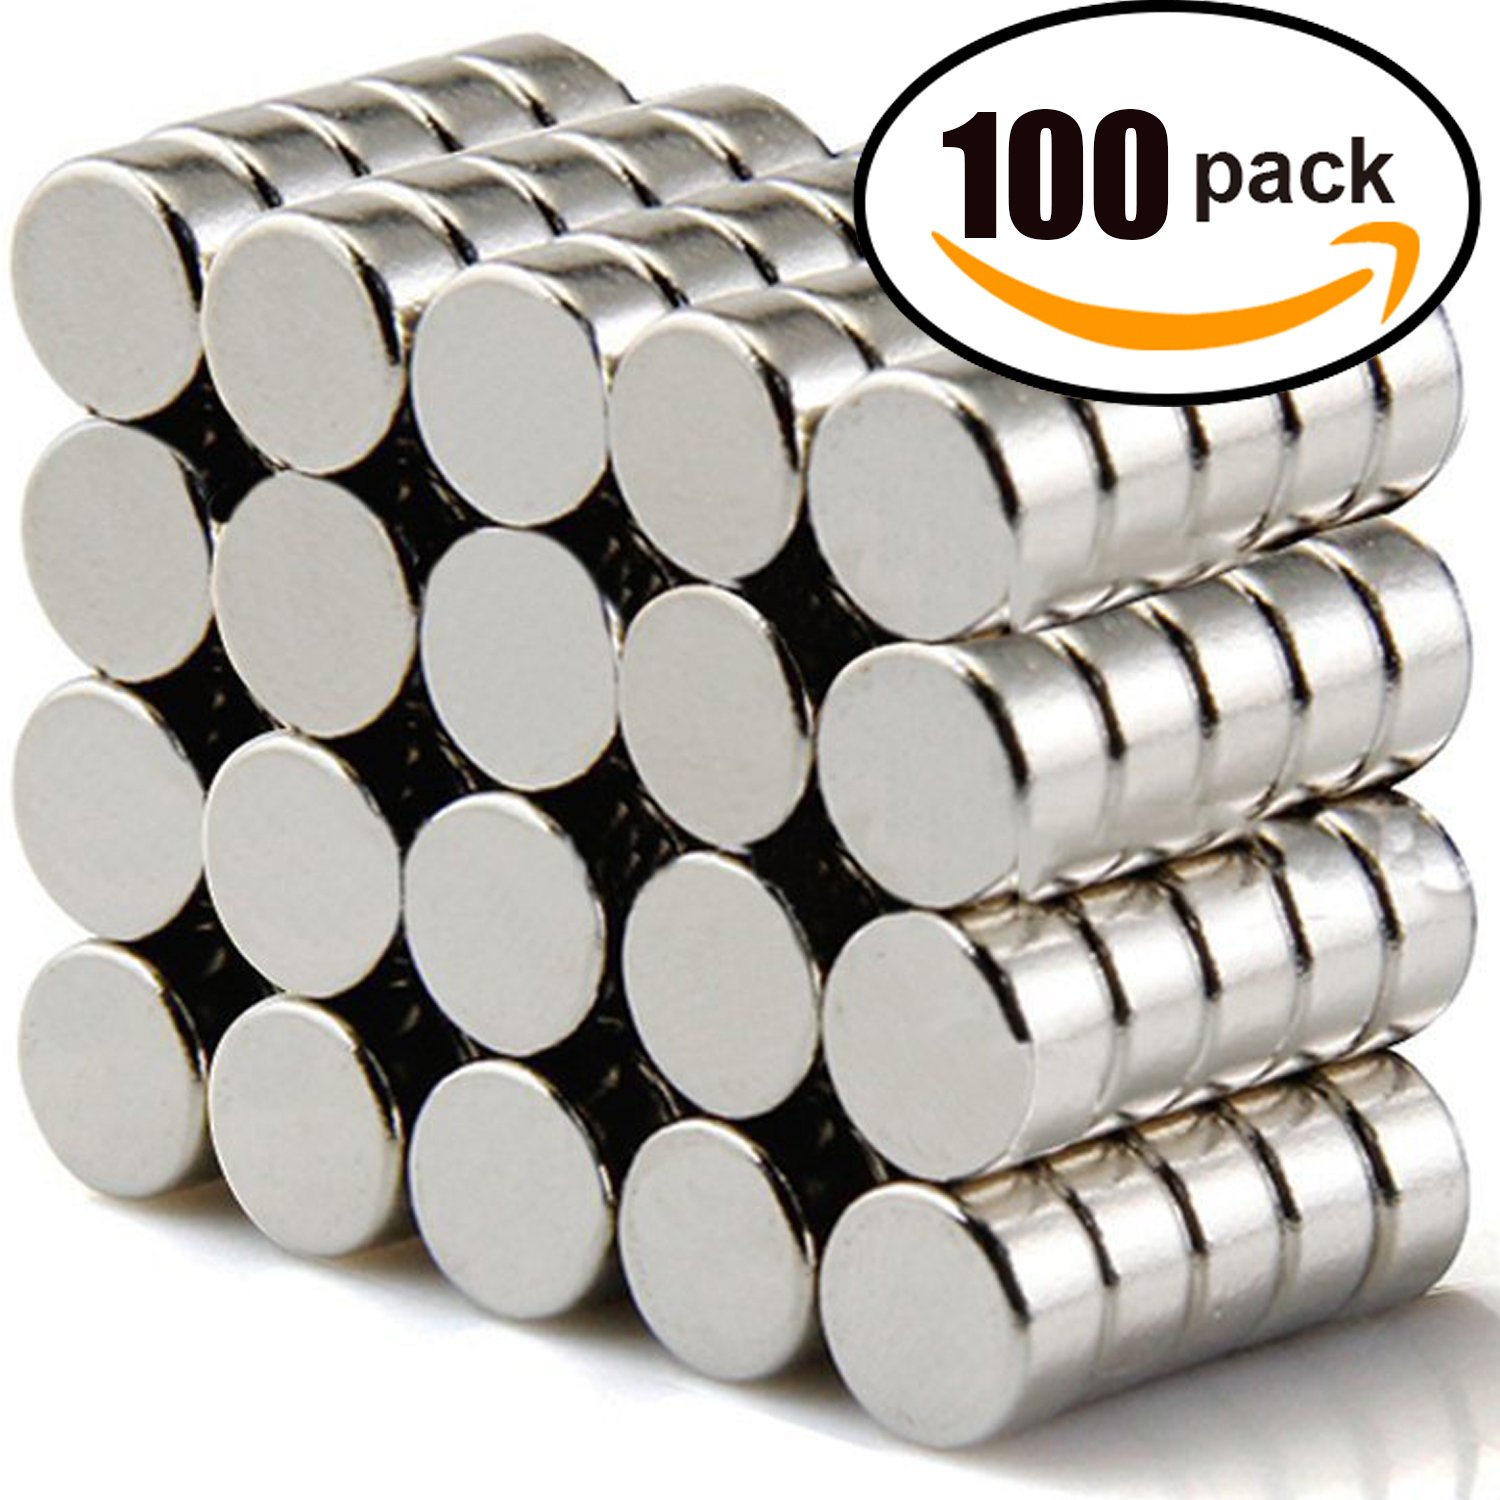 DIYMAG Refrigerator Magnets, 6x3 mm Round Cylinder Magnets Perfect Magnetic Push Pins, Office Magnets, Dry Erase Board Magnetic pins, Map Pins & Bonus 6-3 100P